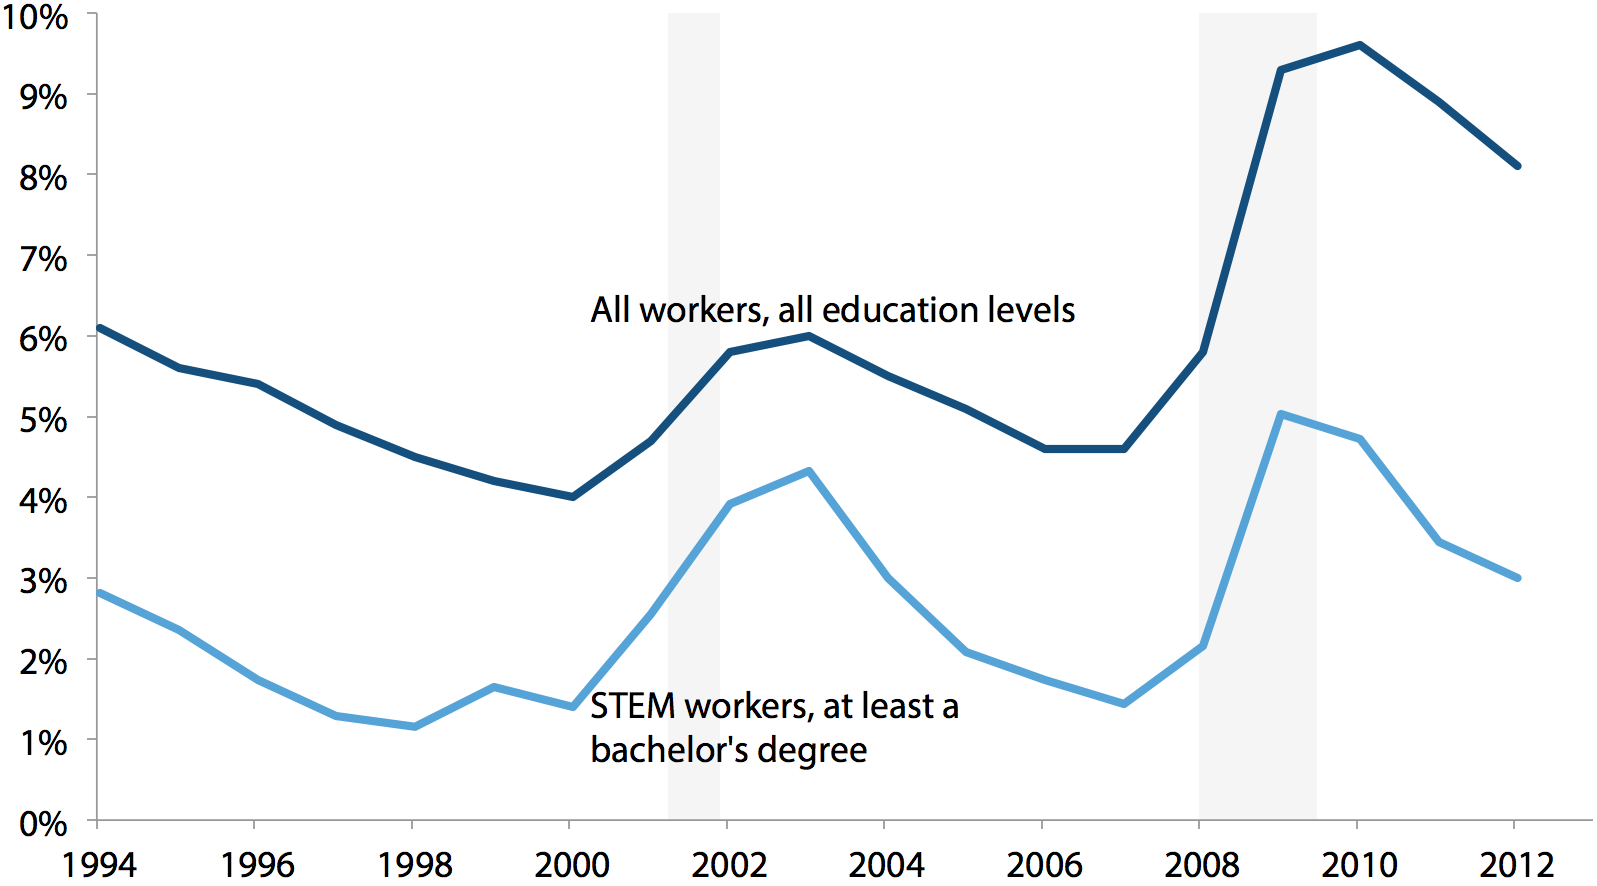 Unemployment rates for all workers, and workers in STEM occupations with at least a bachelor's degree, 1994–2012